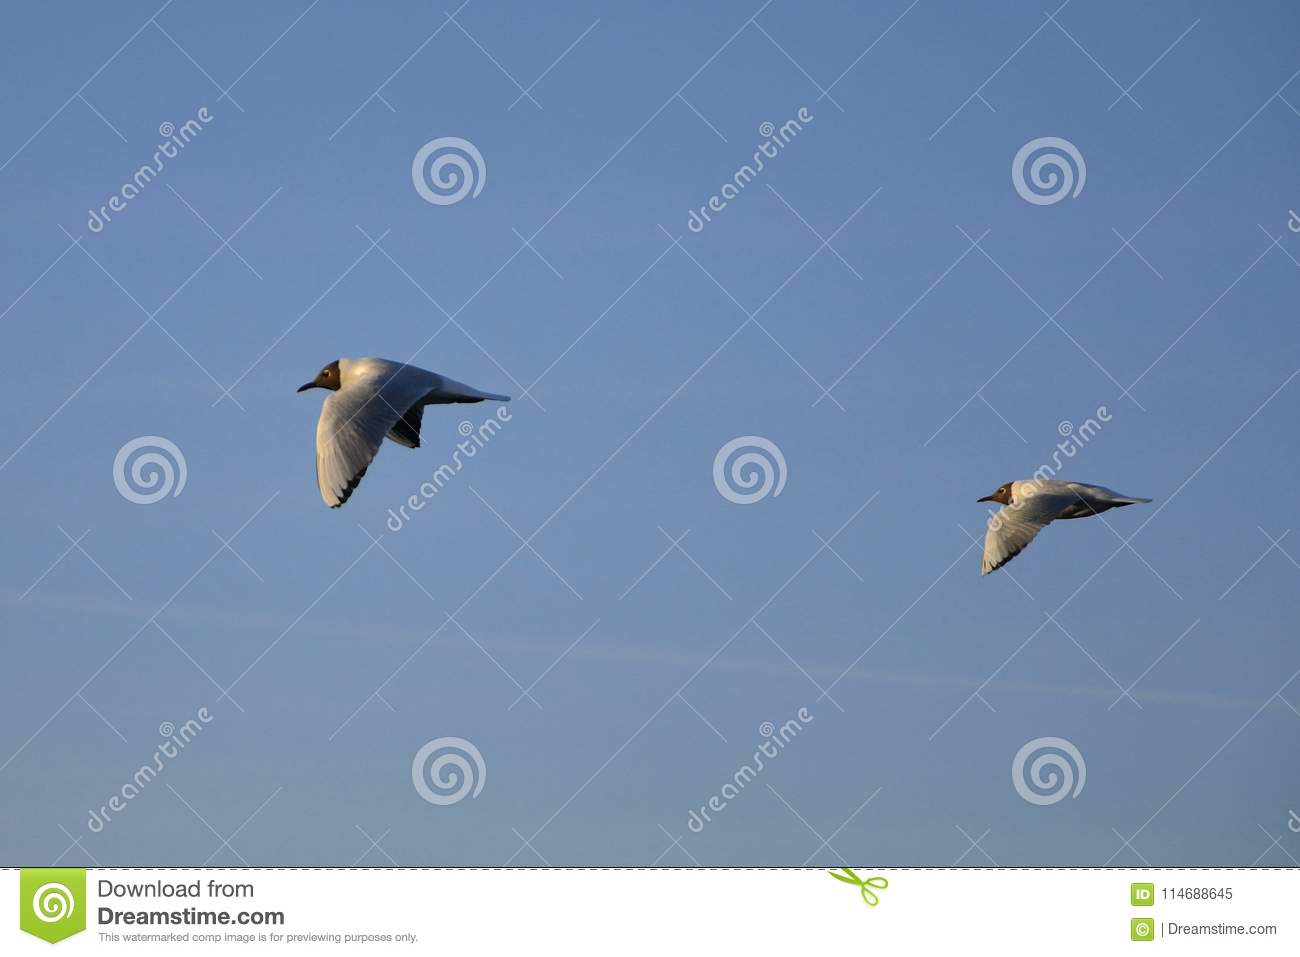 Gulls flying over the water.